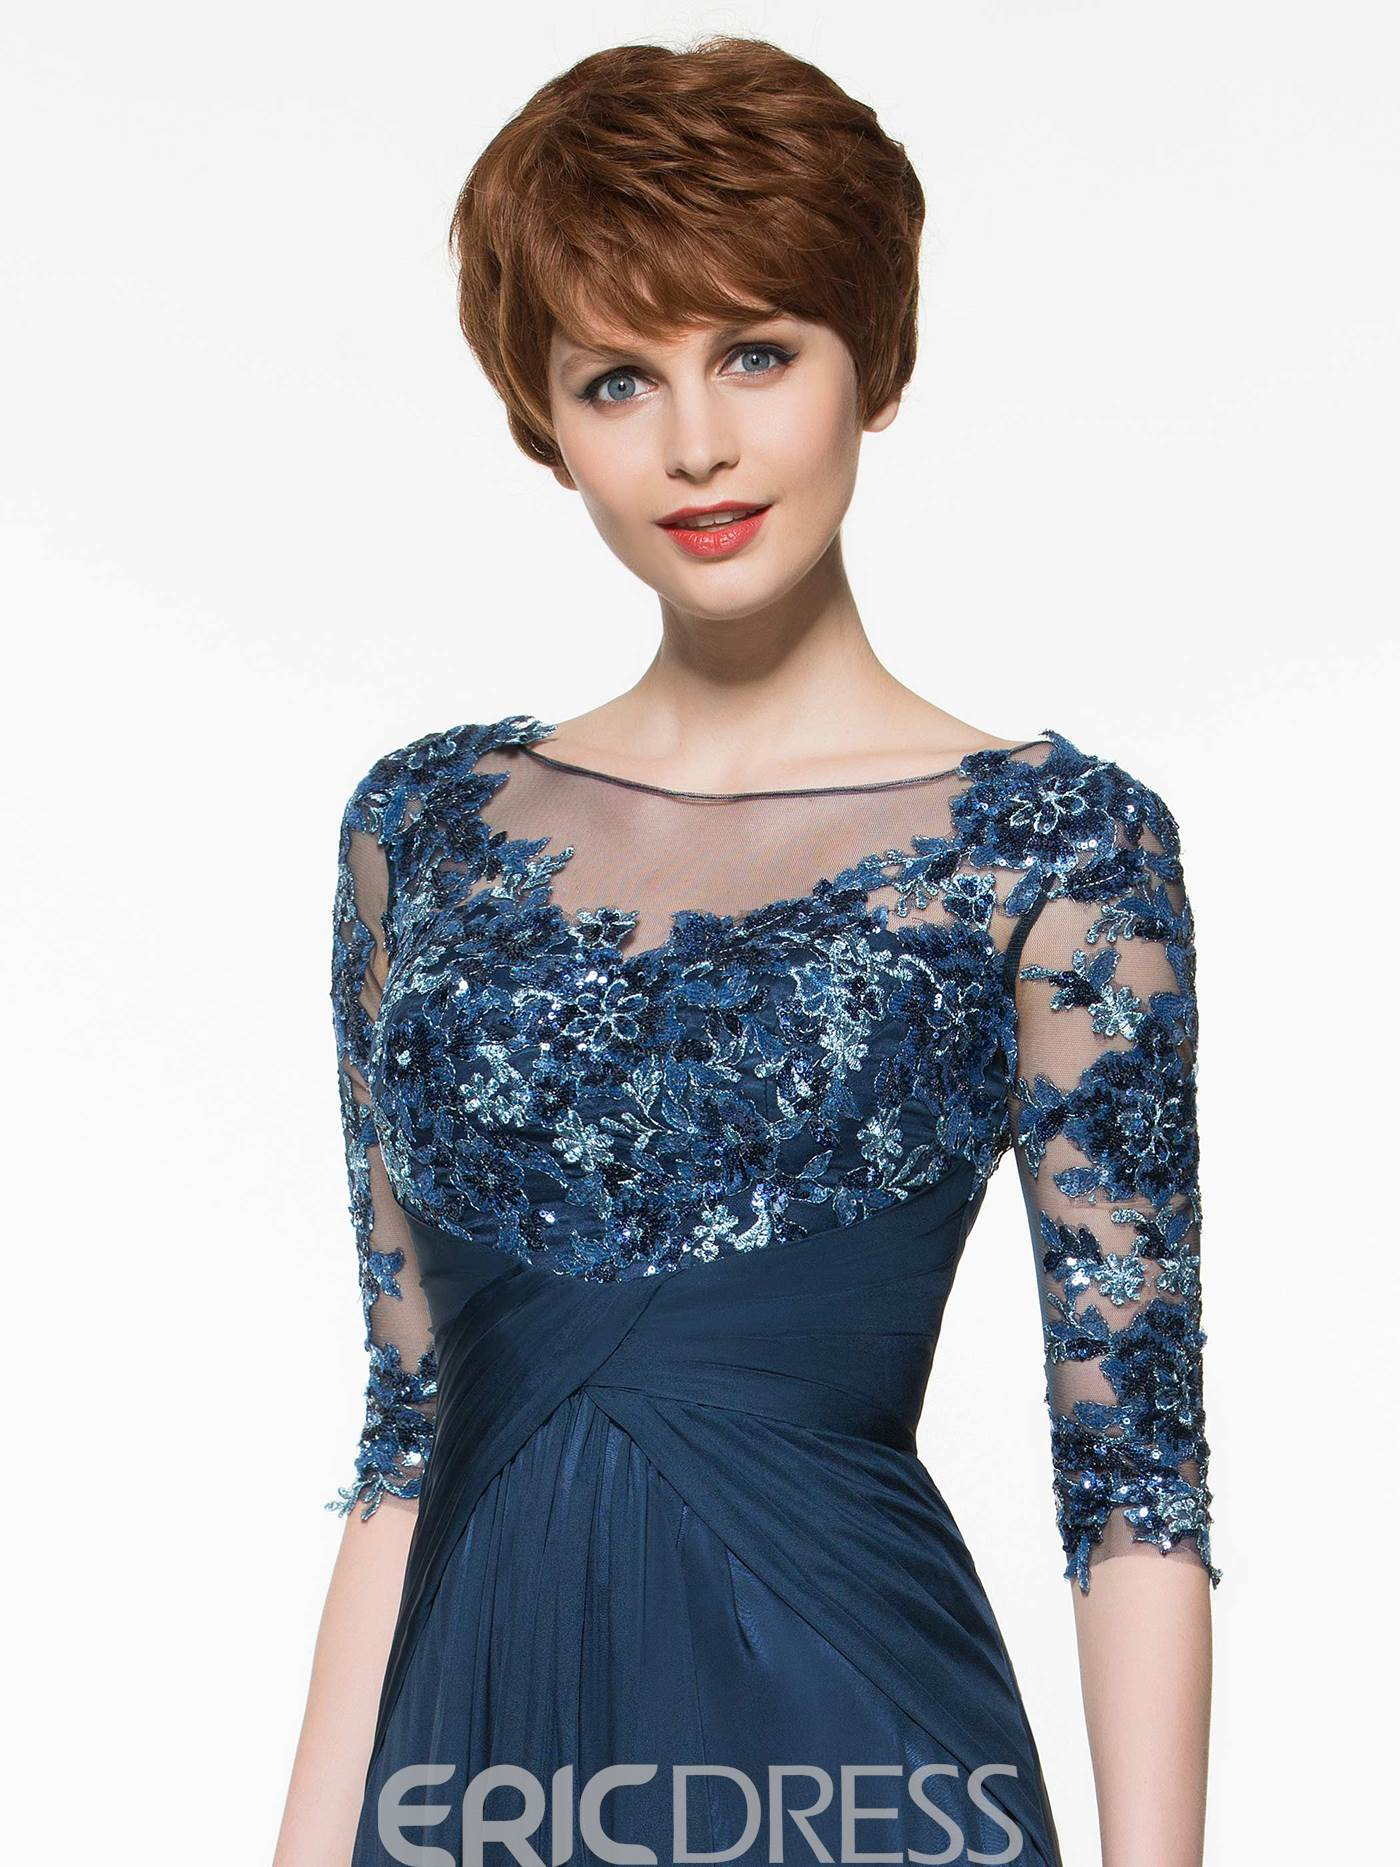 Ericdress Beautiful Bateau A Line Long Mother Of The Bride Dress